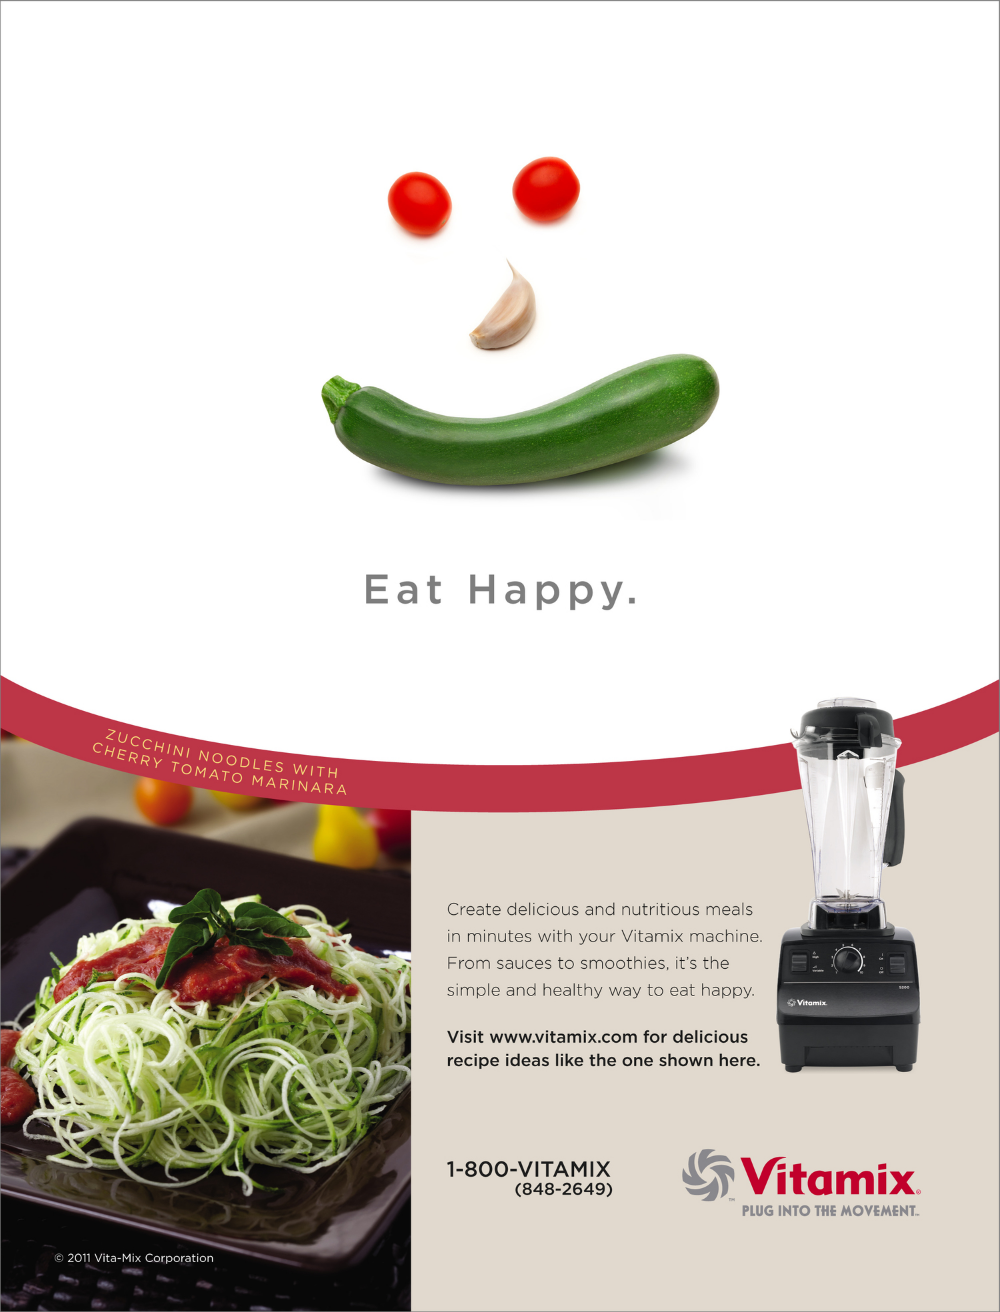 Vitamix Ad series. These ads appeared in healthy living publications that encouraged all natural, healthy soups